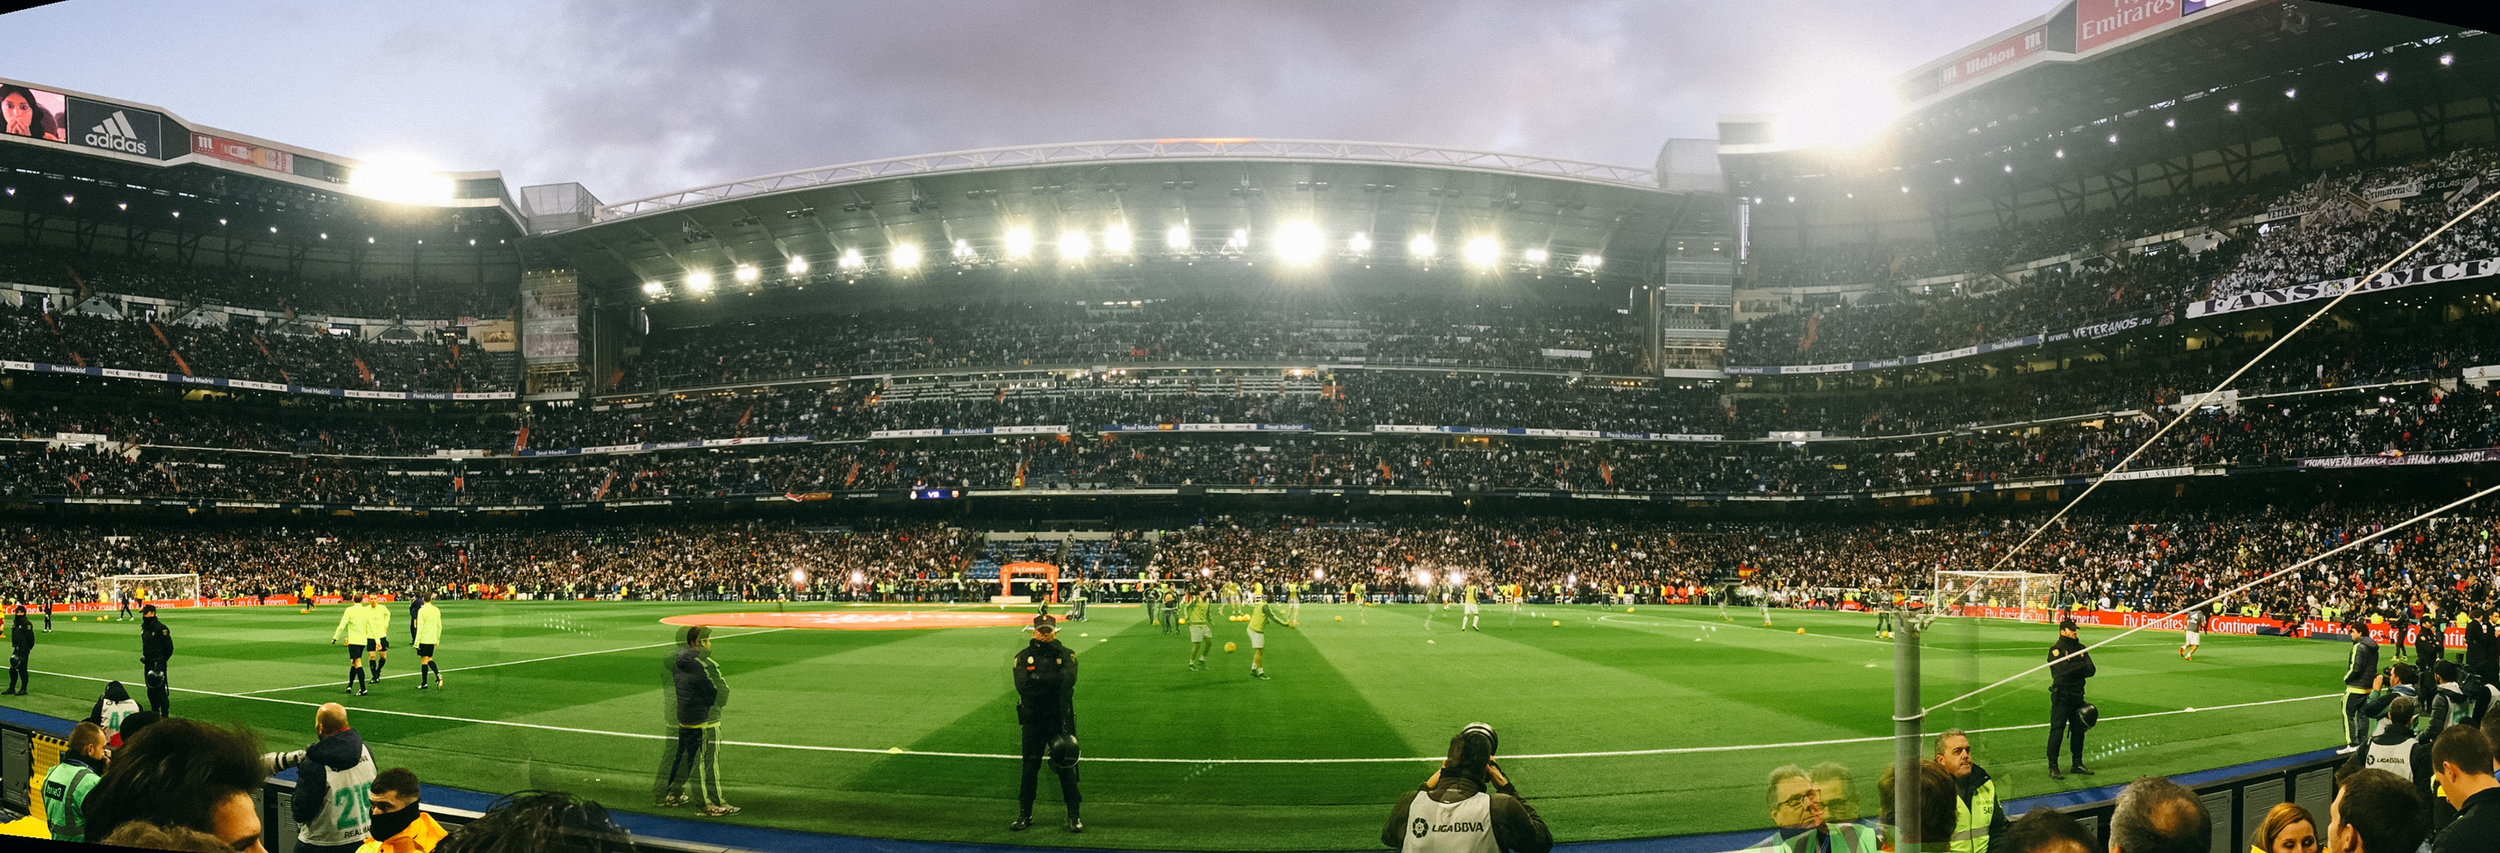 MADRID, SPAIN: Bernabéu Stadium